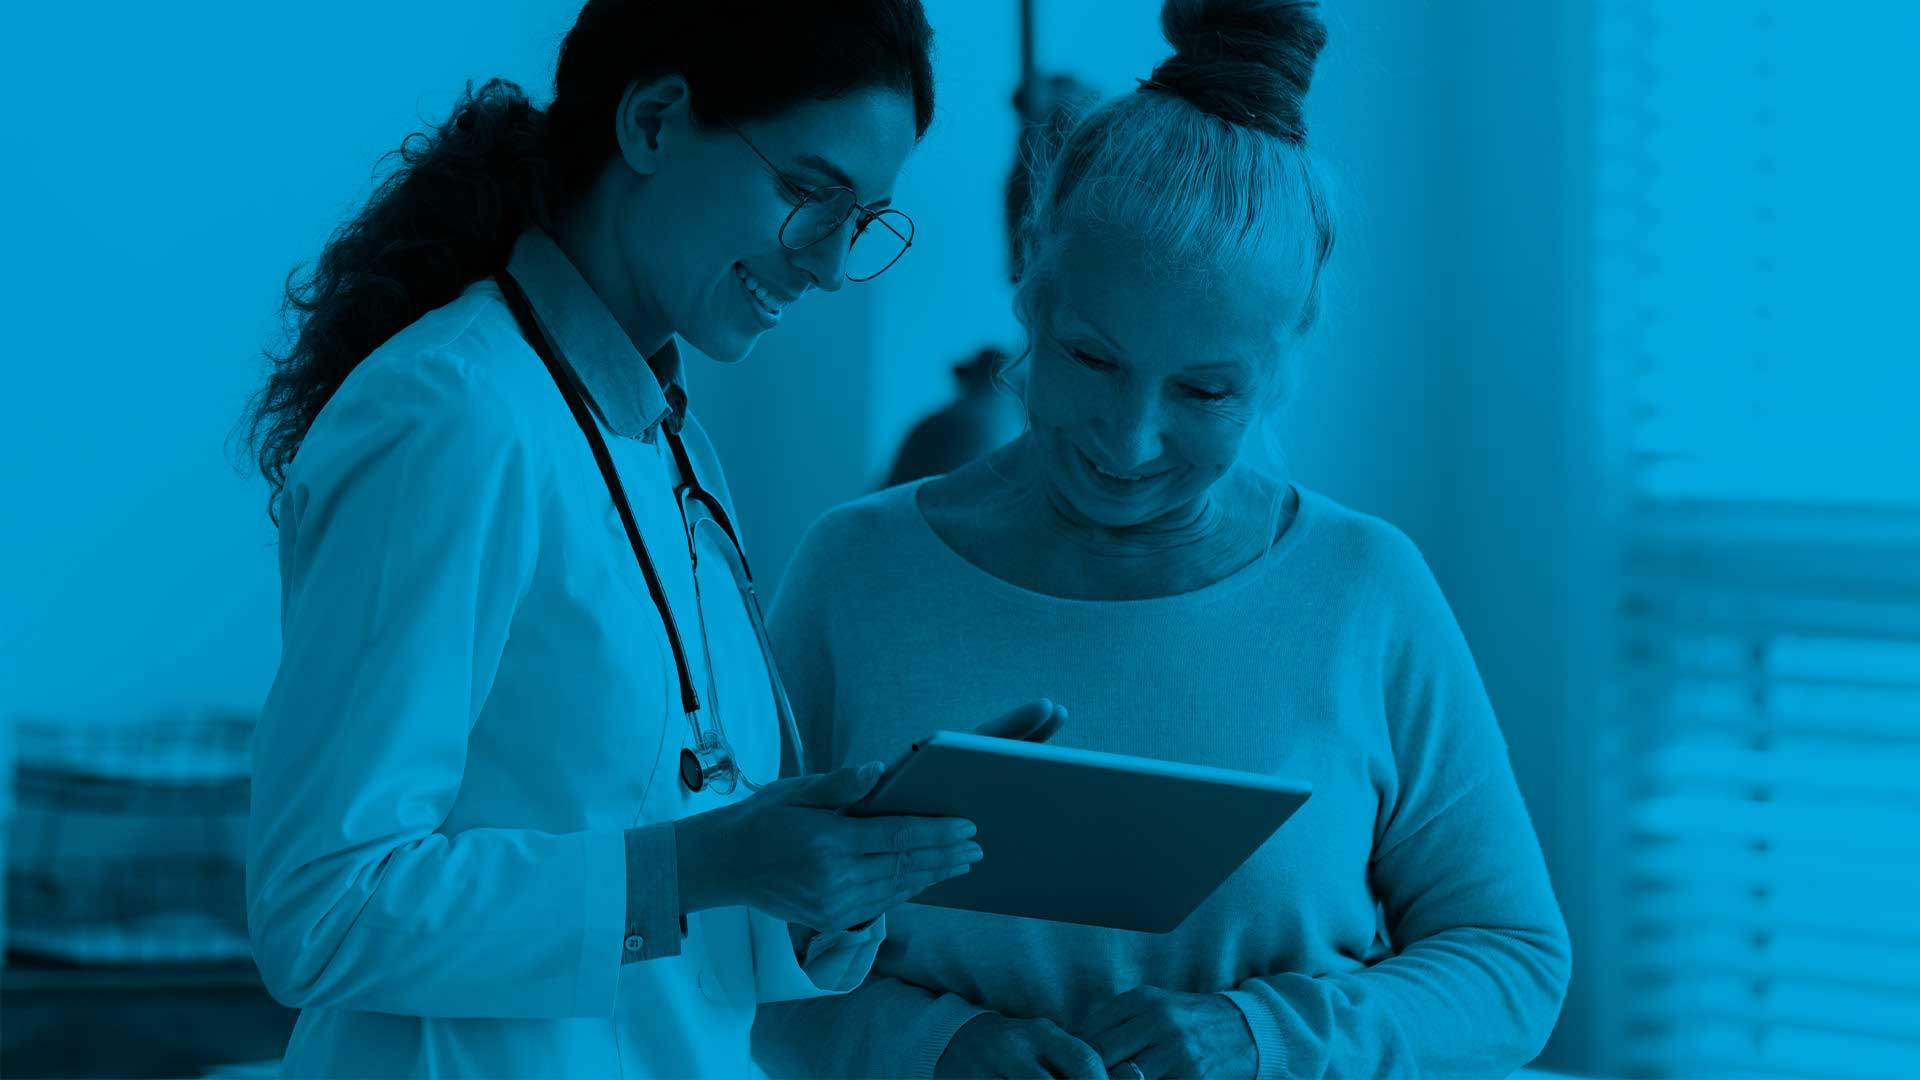 Perspectives image_doctor with patient looking at tablet blue overlay